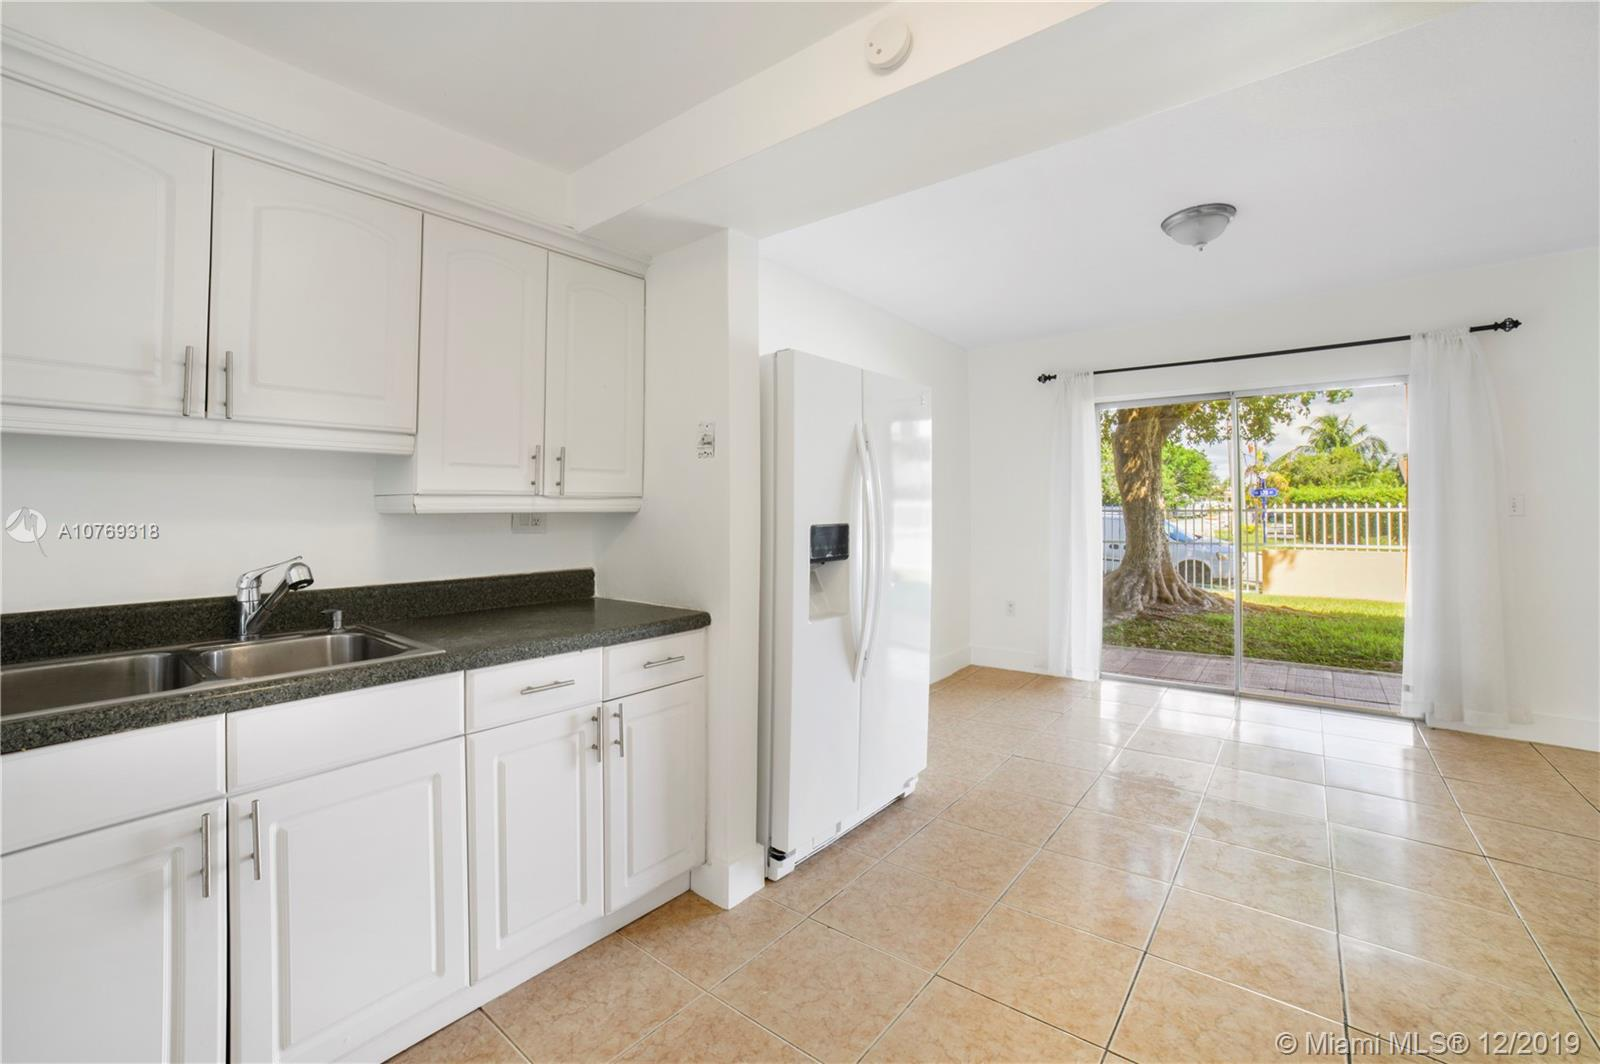 9420 SW 170 ST #202 For Sale A10769318, FL